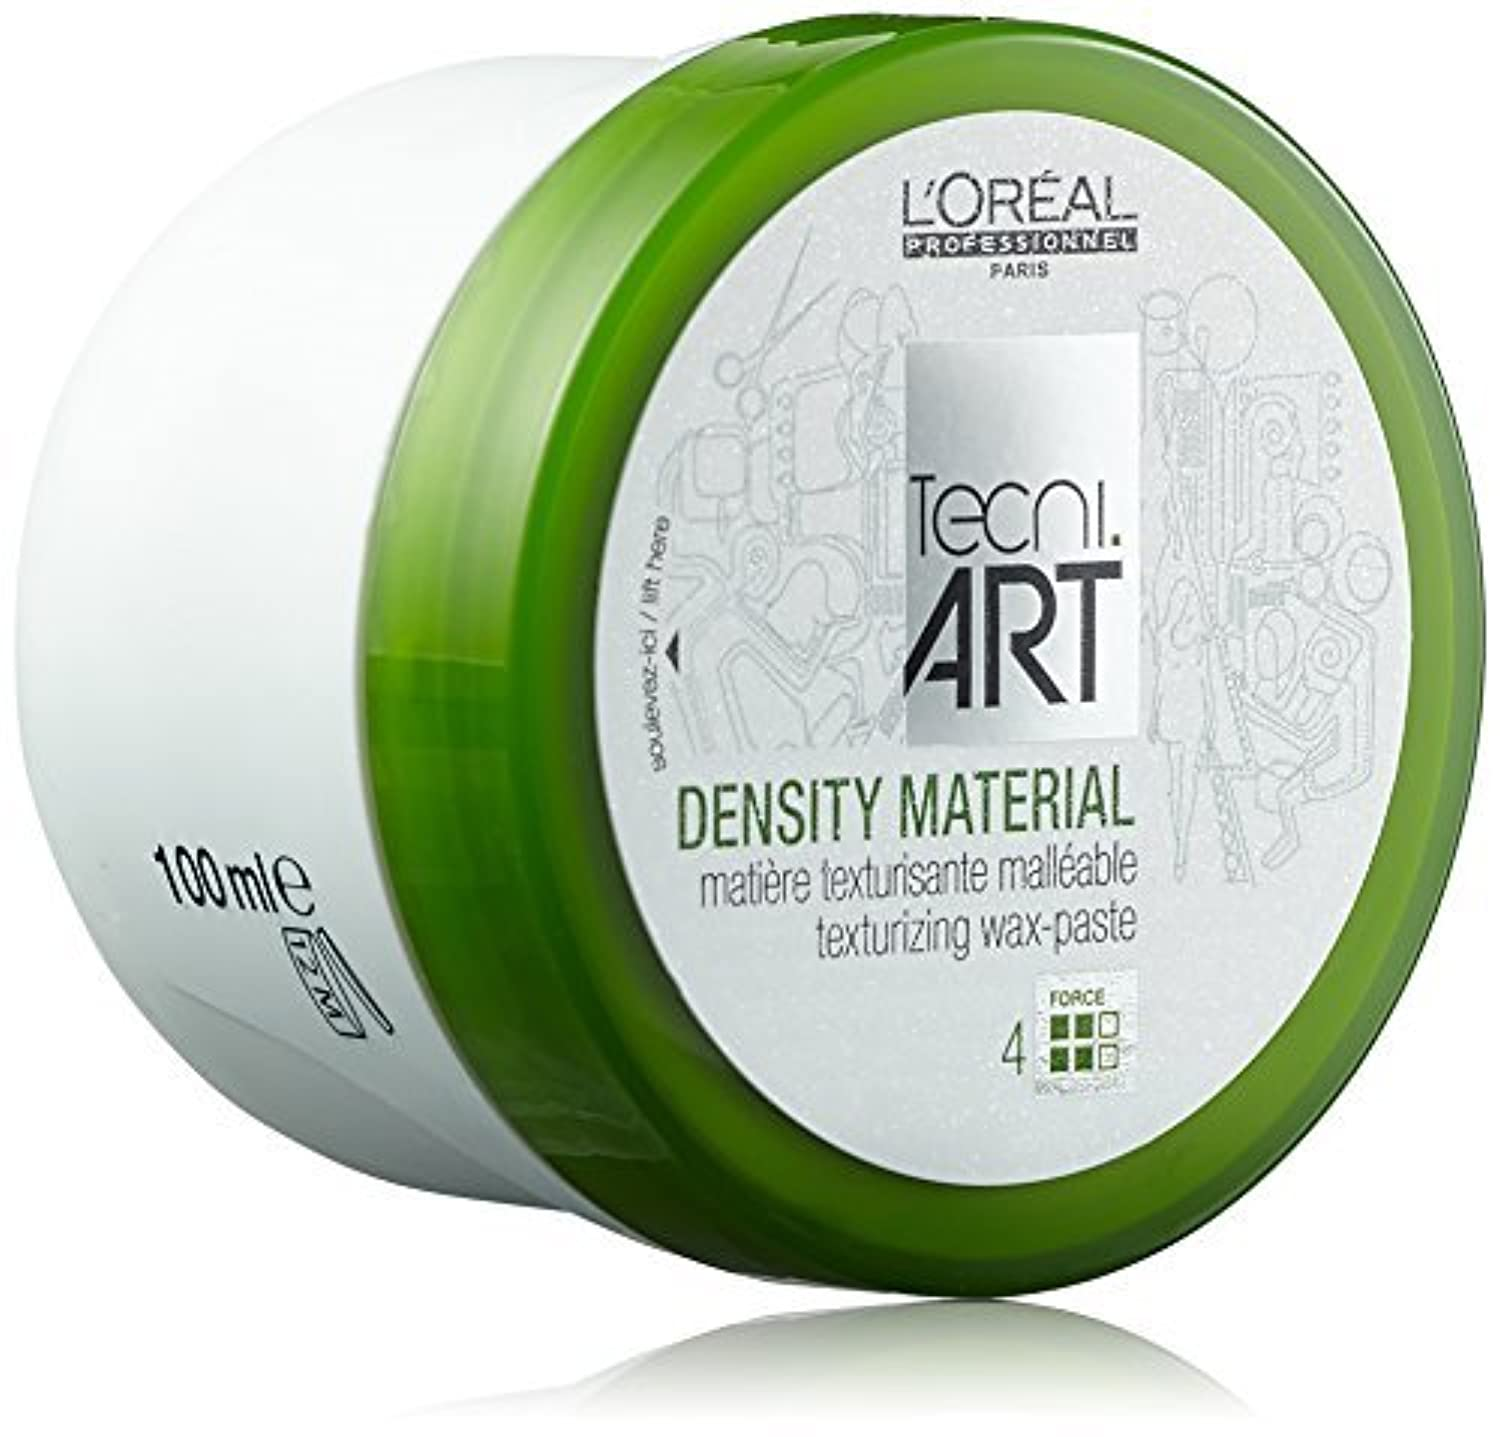 バージンバージン明るくするL'Oreal Professionnel Tecni.Art Play Ball Density Material 100ml/3.4oz by L'oreal [並行輸入品]